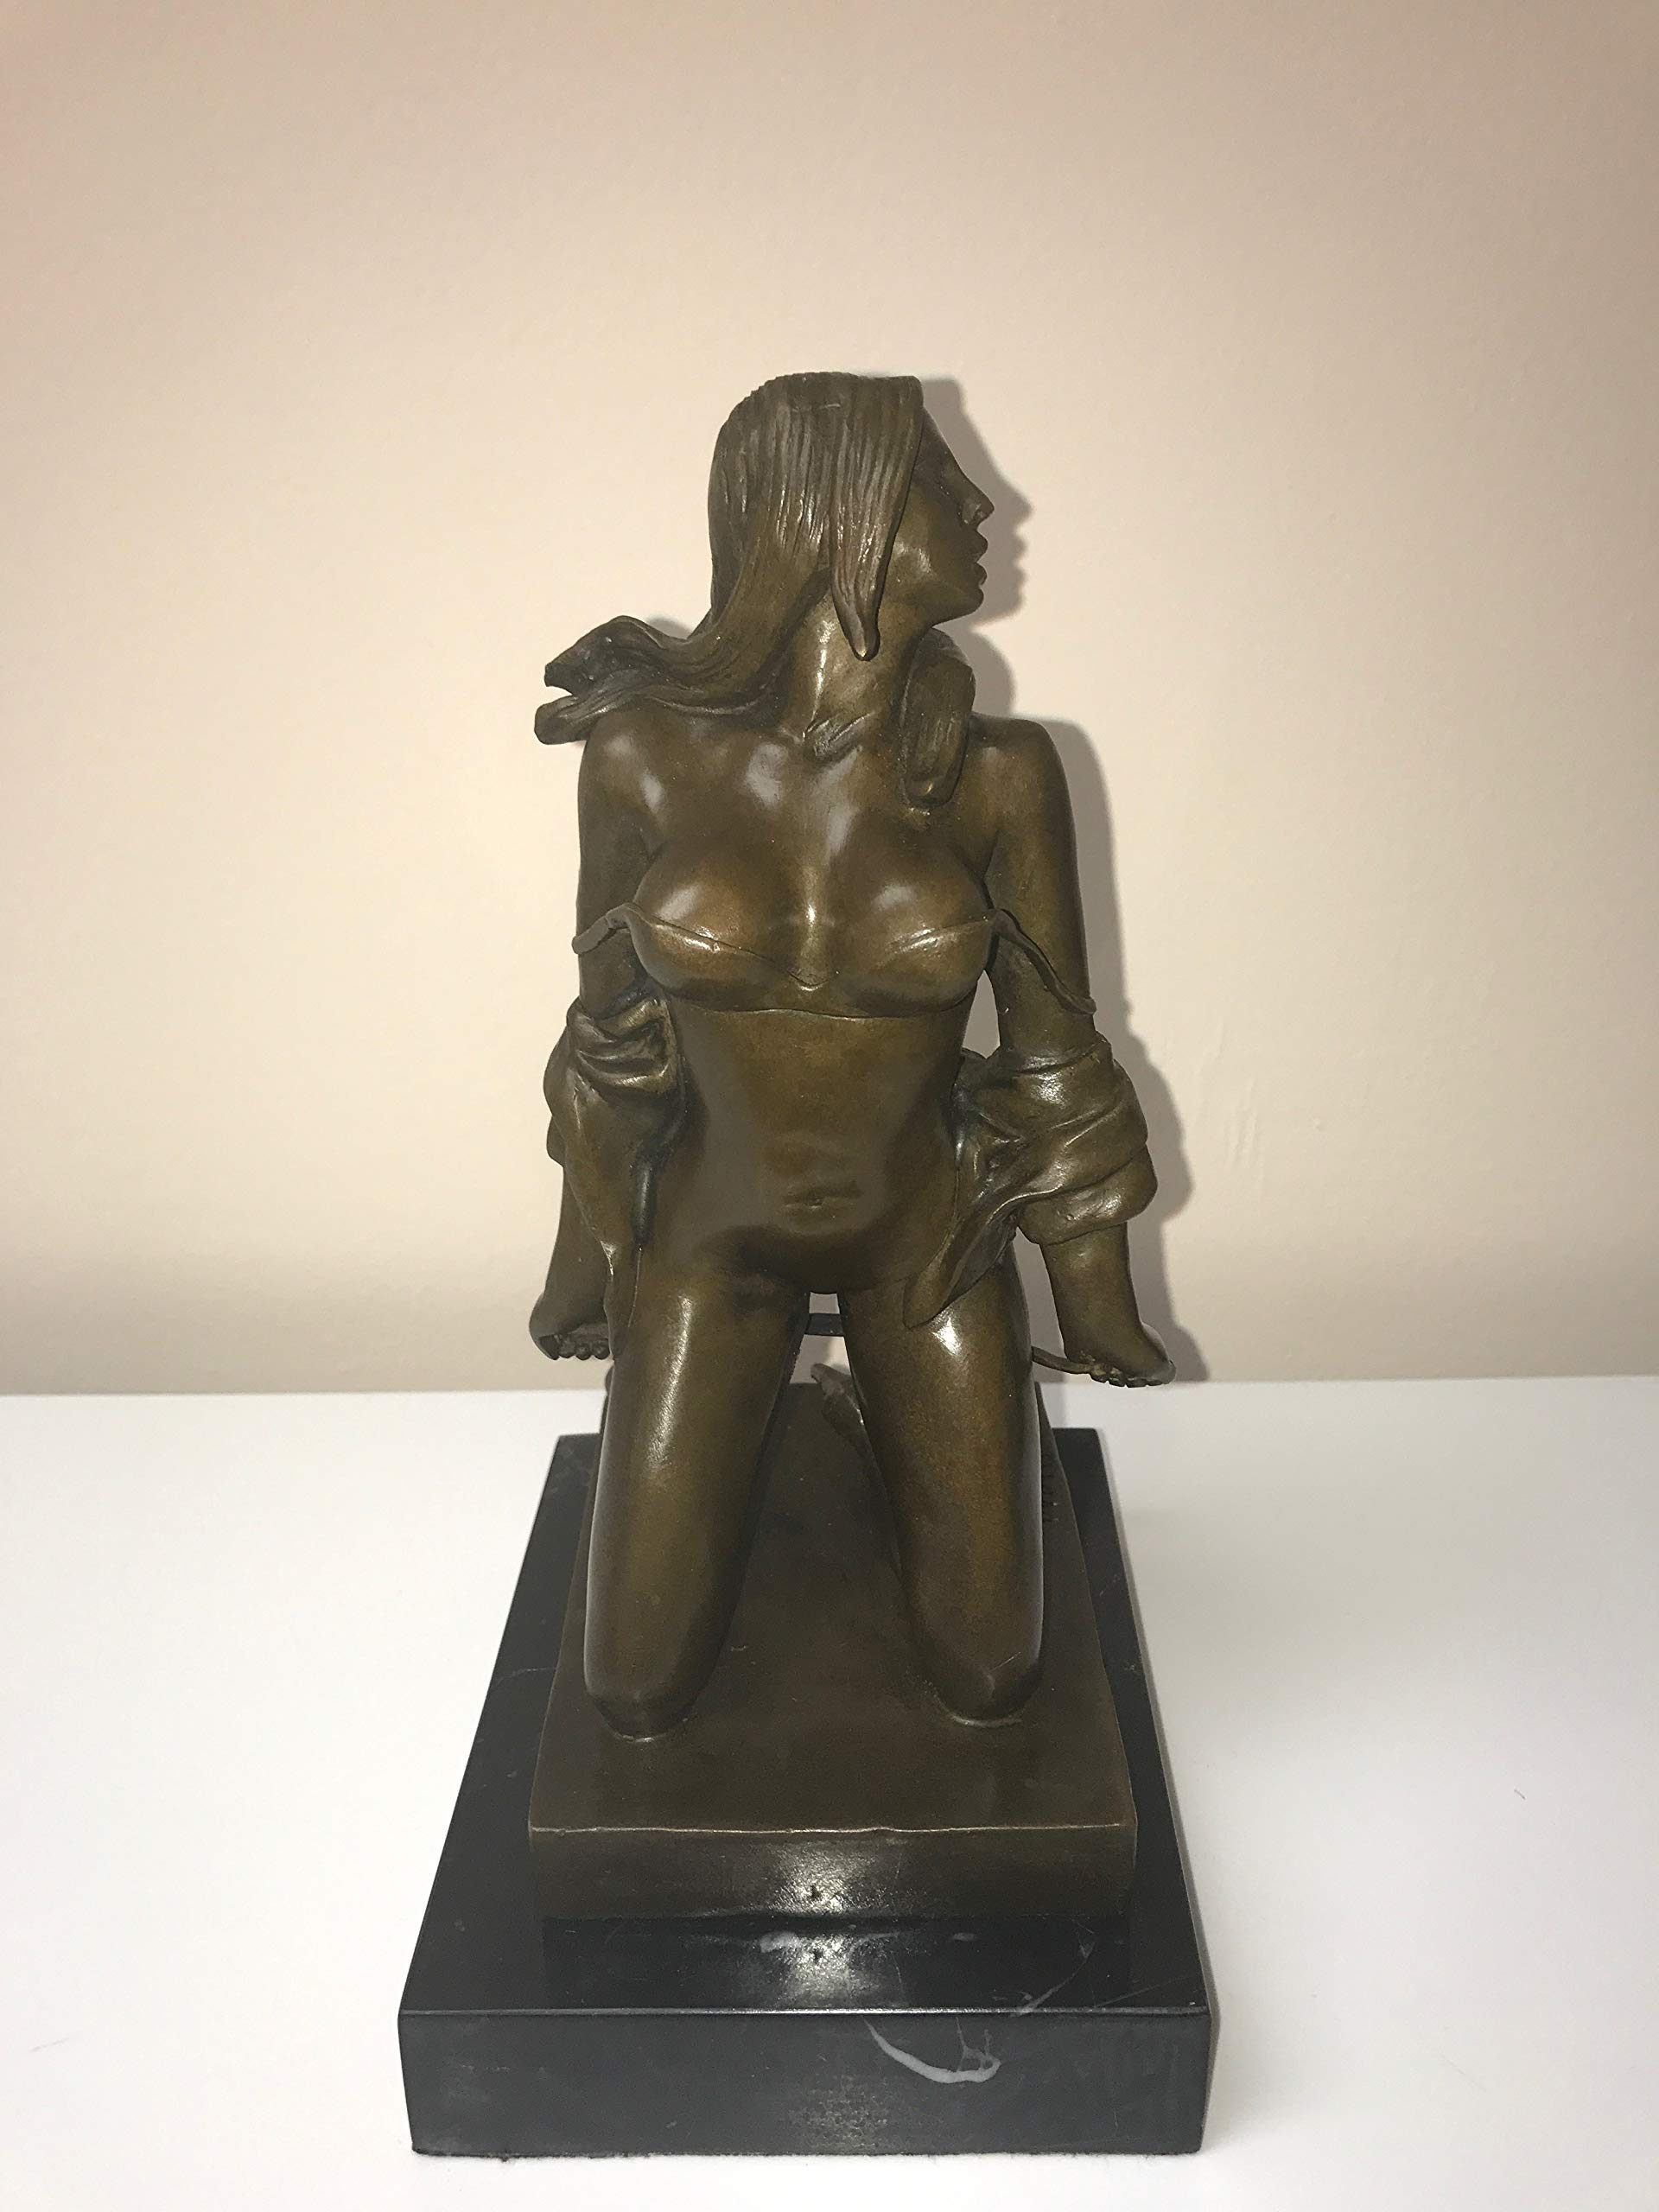 Bronze Statue Woman - Sexy Erotic Bronze Statue Tease - Hard Spanking - Clothes Falling Off - Big Breasts and Nice Ass - Real - European Art - Sexy Statues and Figurines